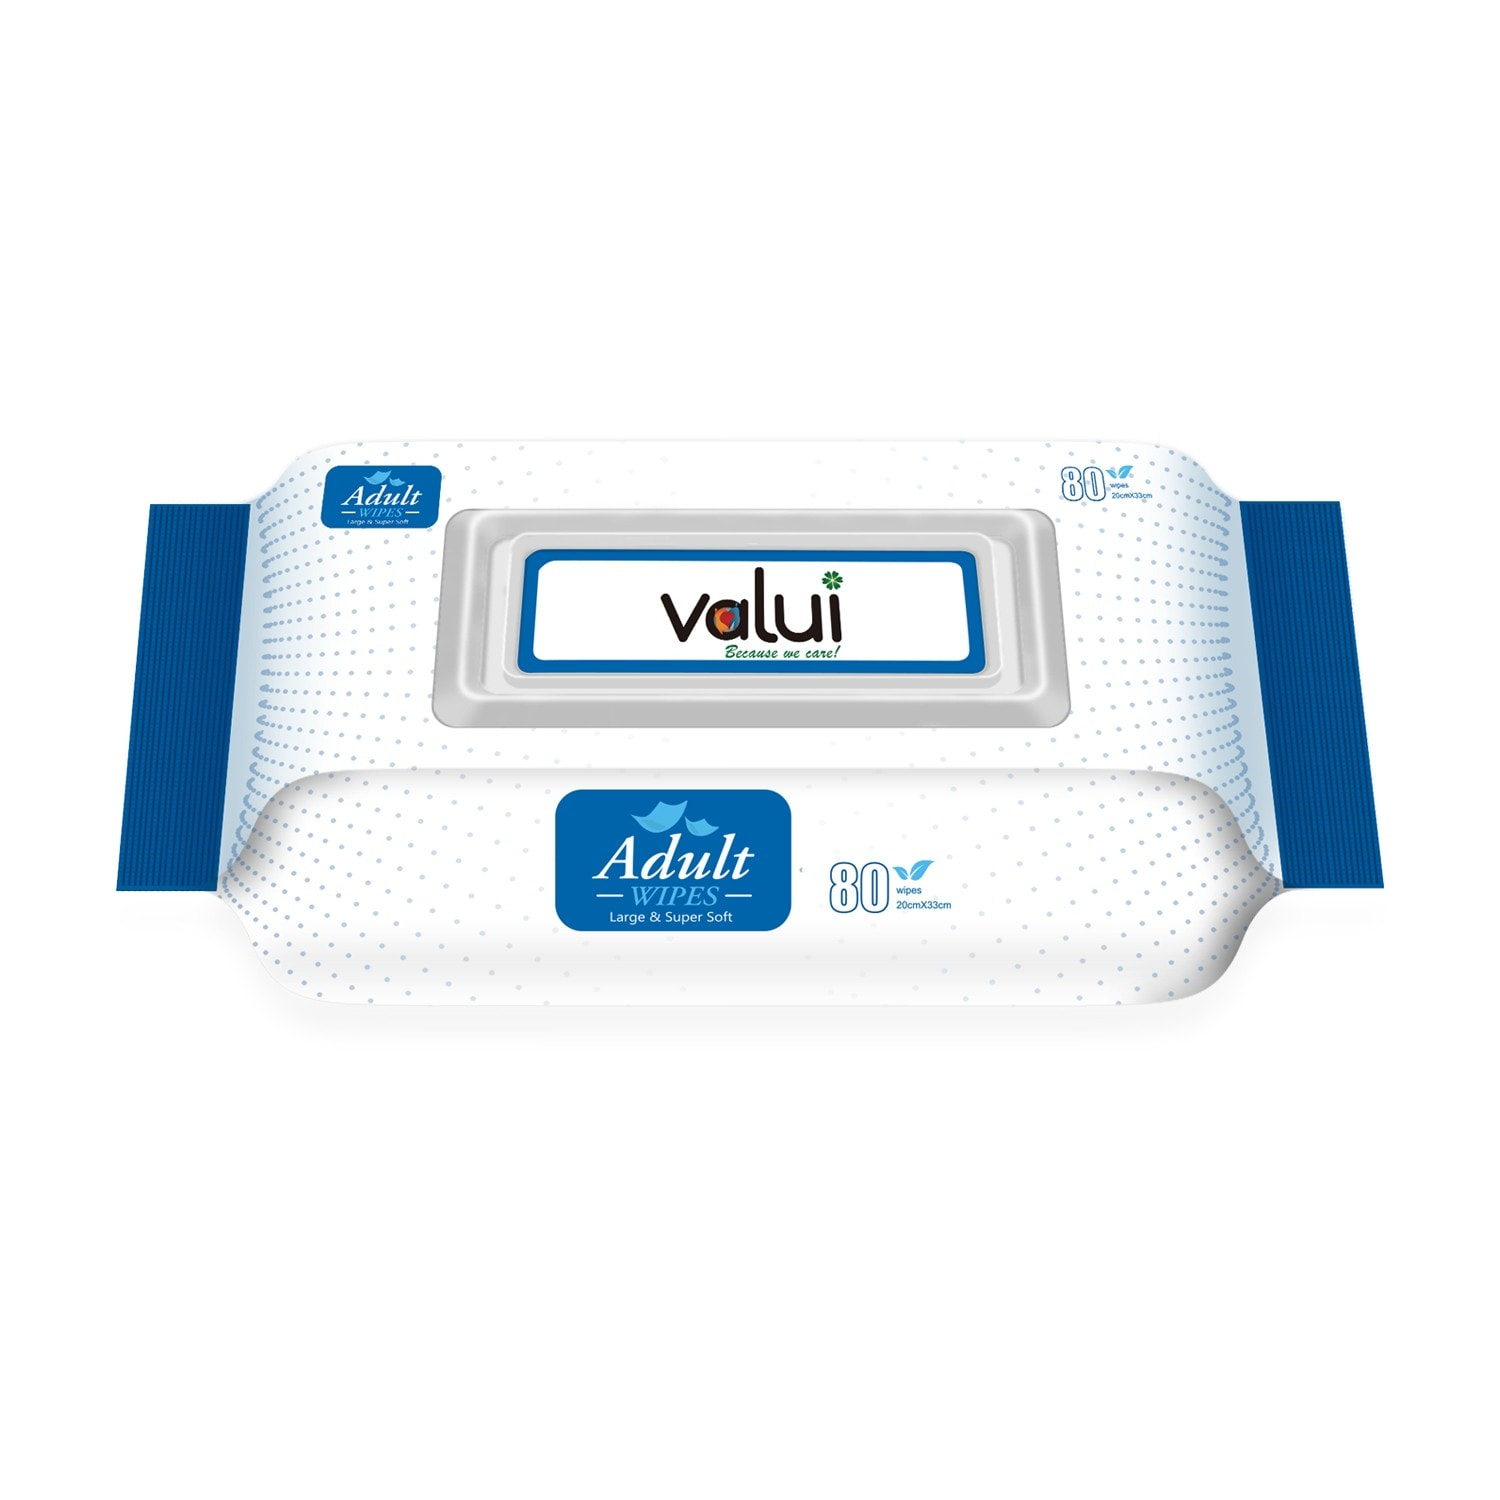 Valui Adult Extra Large Wipes 80 Pack